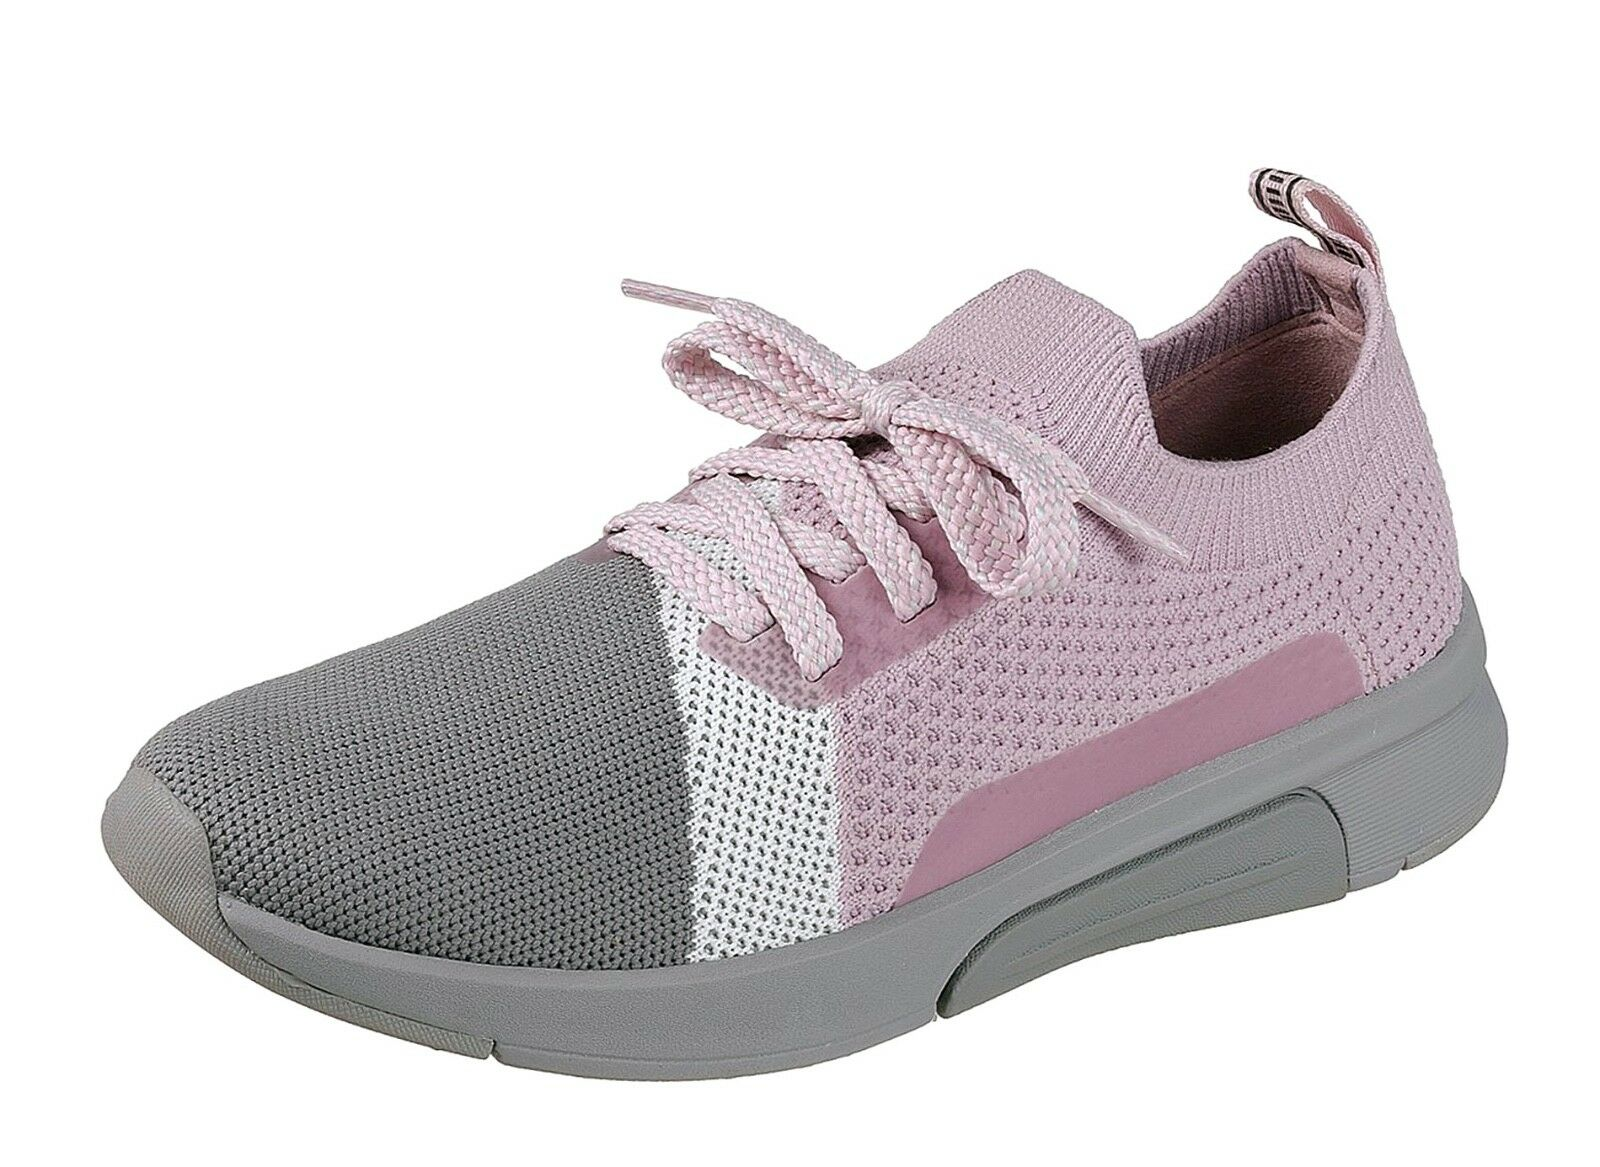 Skechers Mark Nason NEW Sequoia lilac grau memory foam fashion trainers Größe 3-8